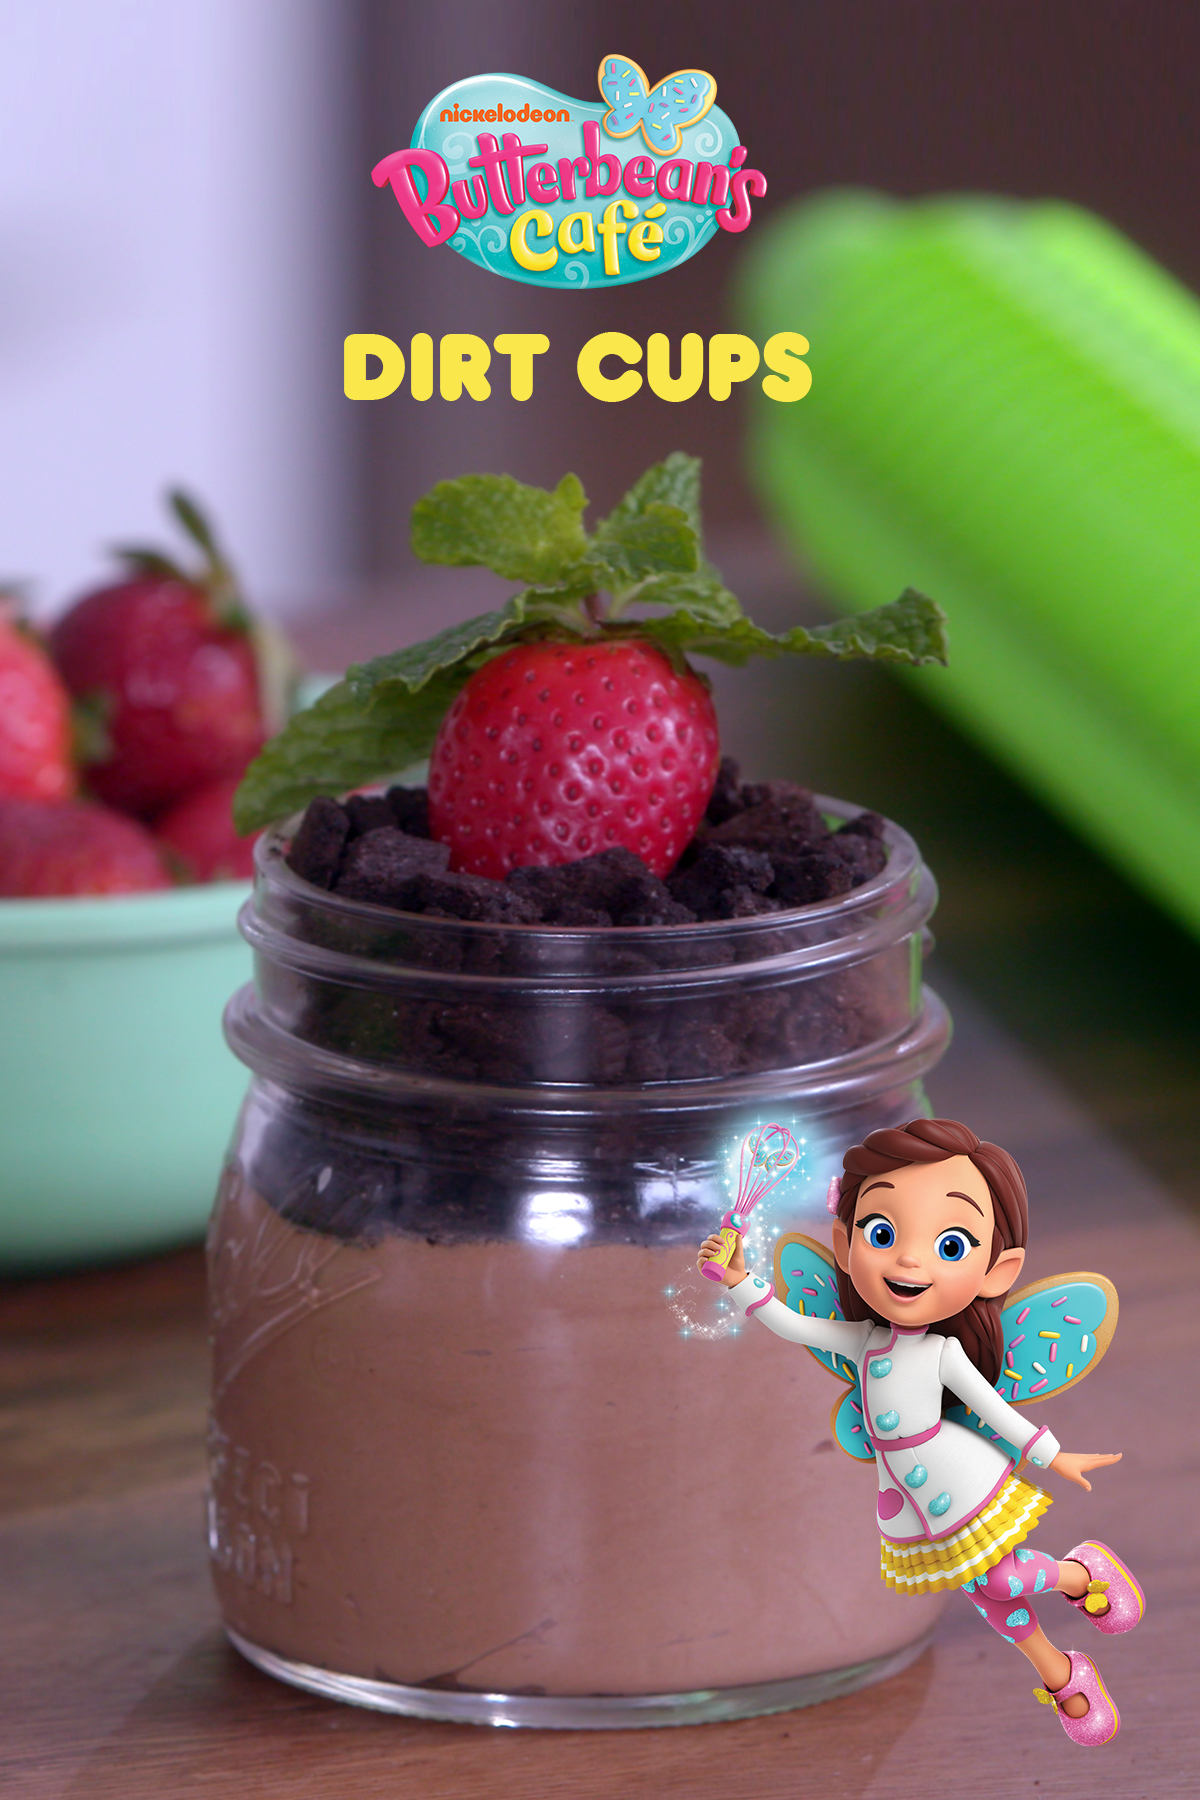 Butterbean's Cafe Dirt Cup Recipe